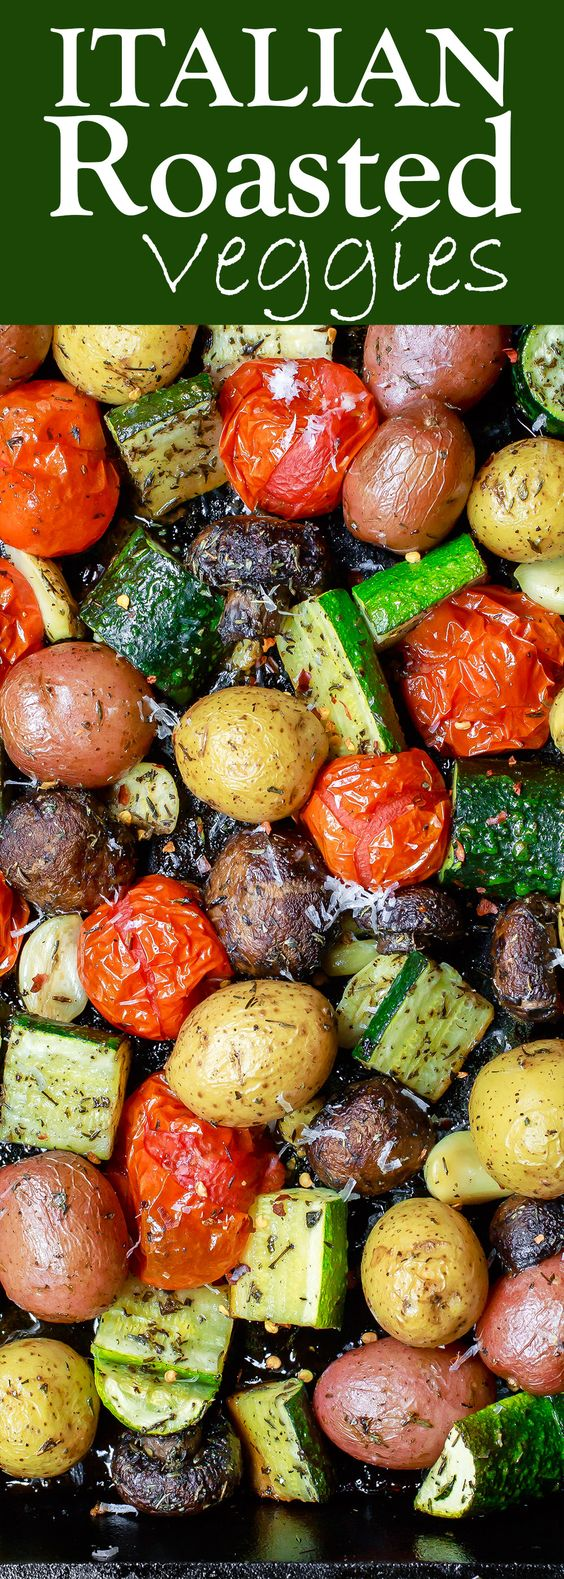 ITALIAN OVEN ROASTED VEGETABLES #italian #italianfood #oven #roastedvegetables #veganrecipes #vegetarianrecipes #vegetablerecipes